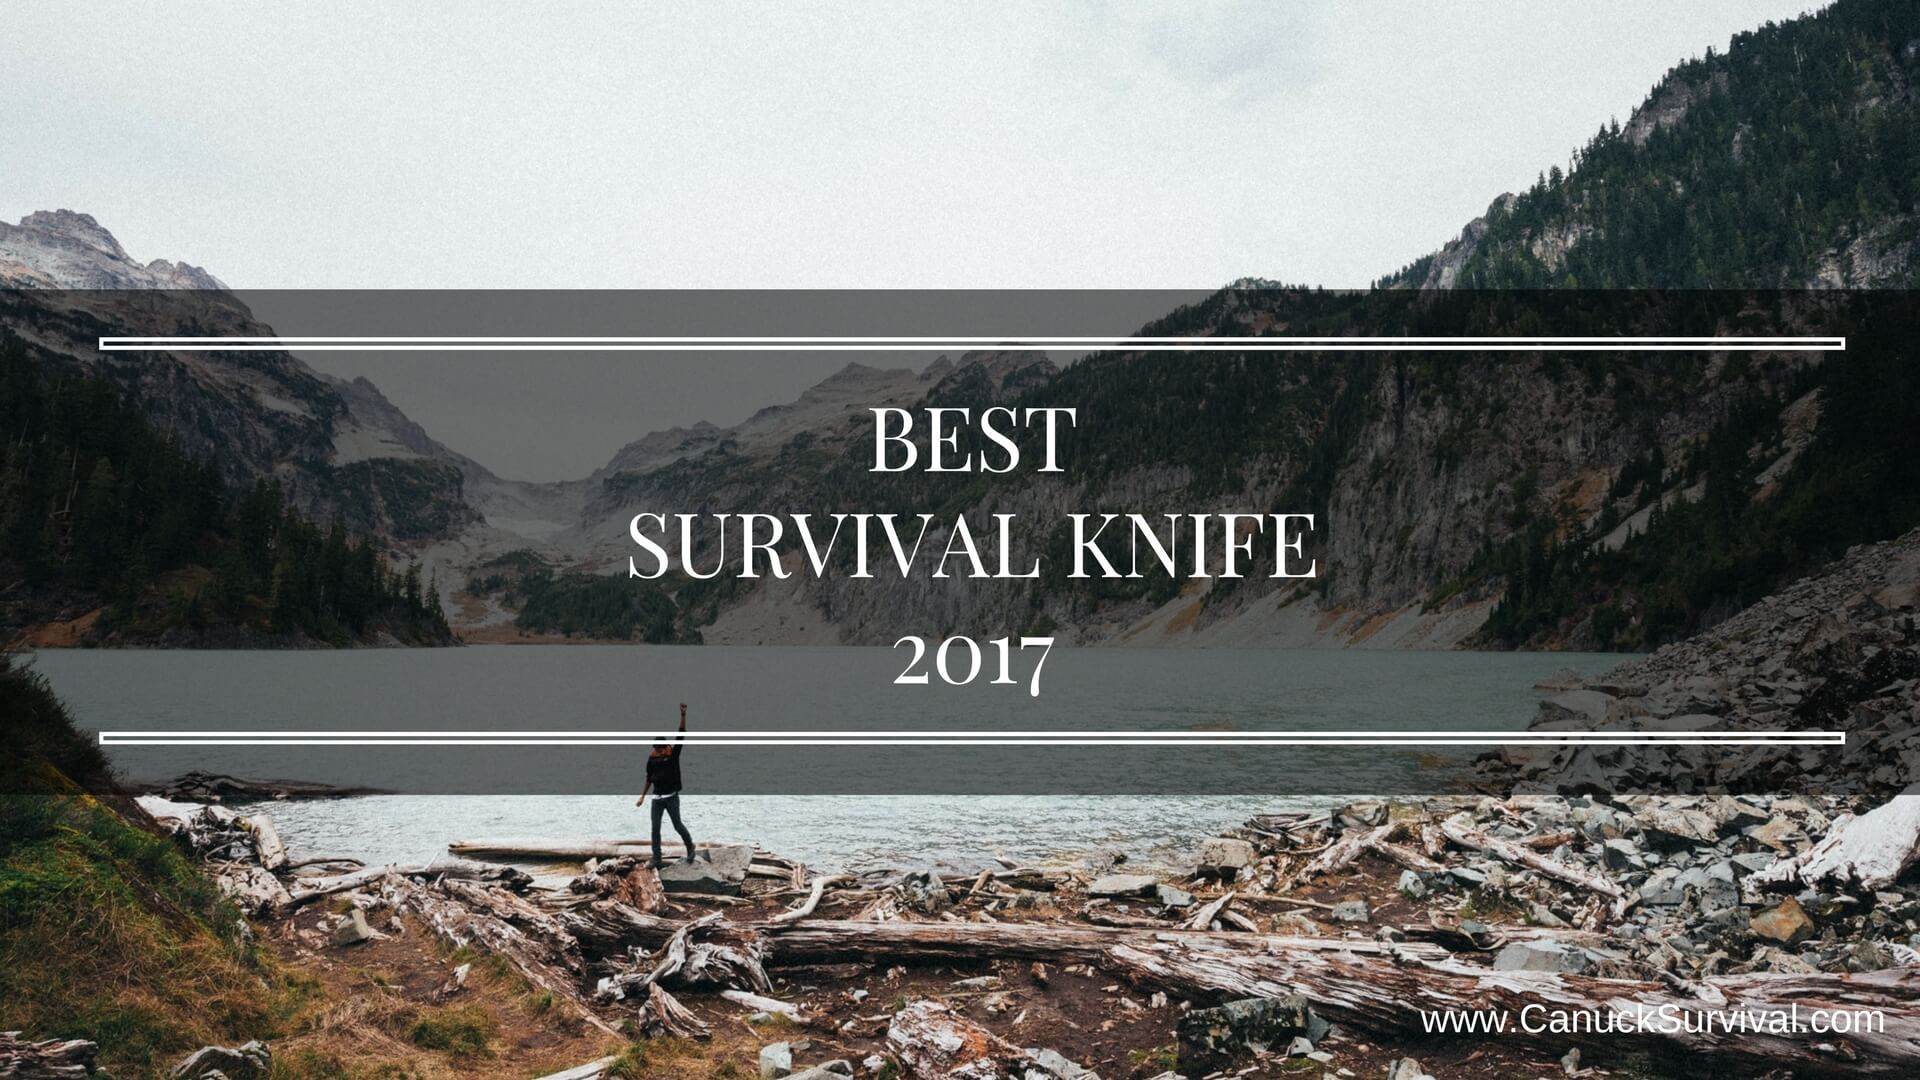 Best Survival Knife 2017